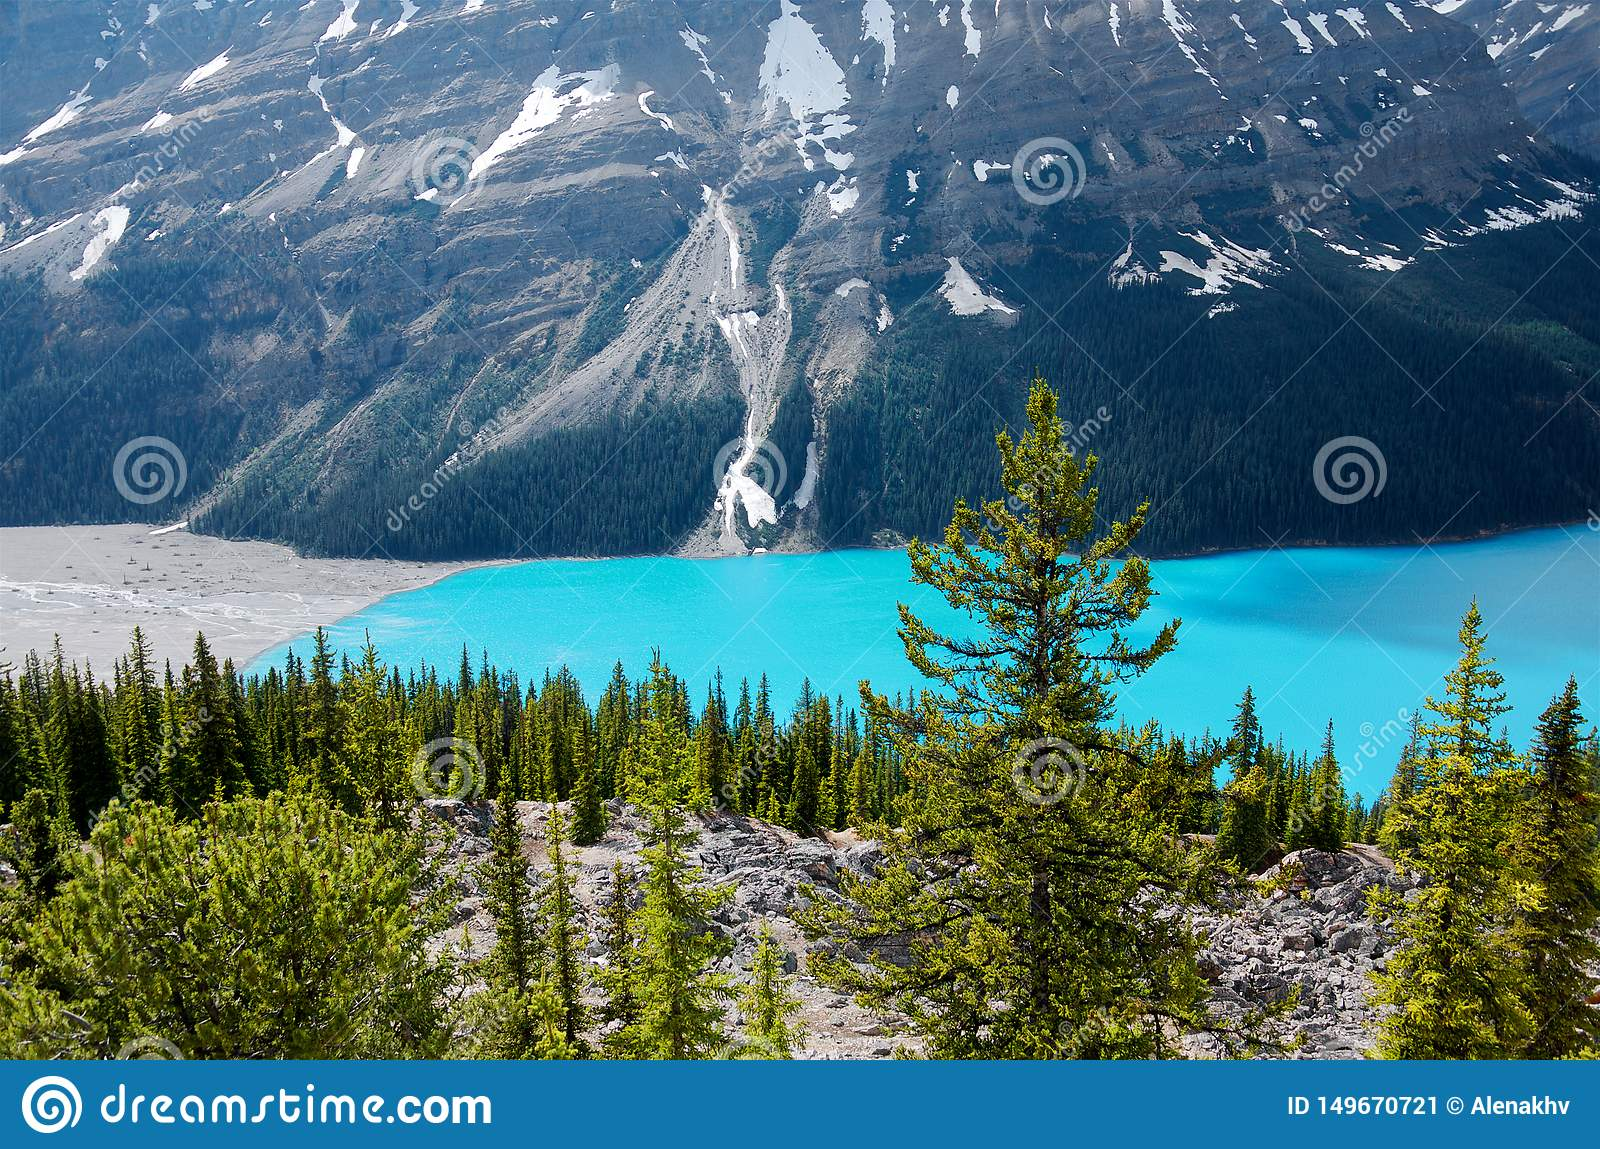 Pines and turquoise water of a mountain Peyto lake